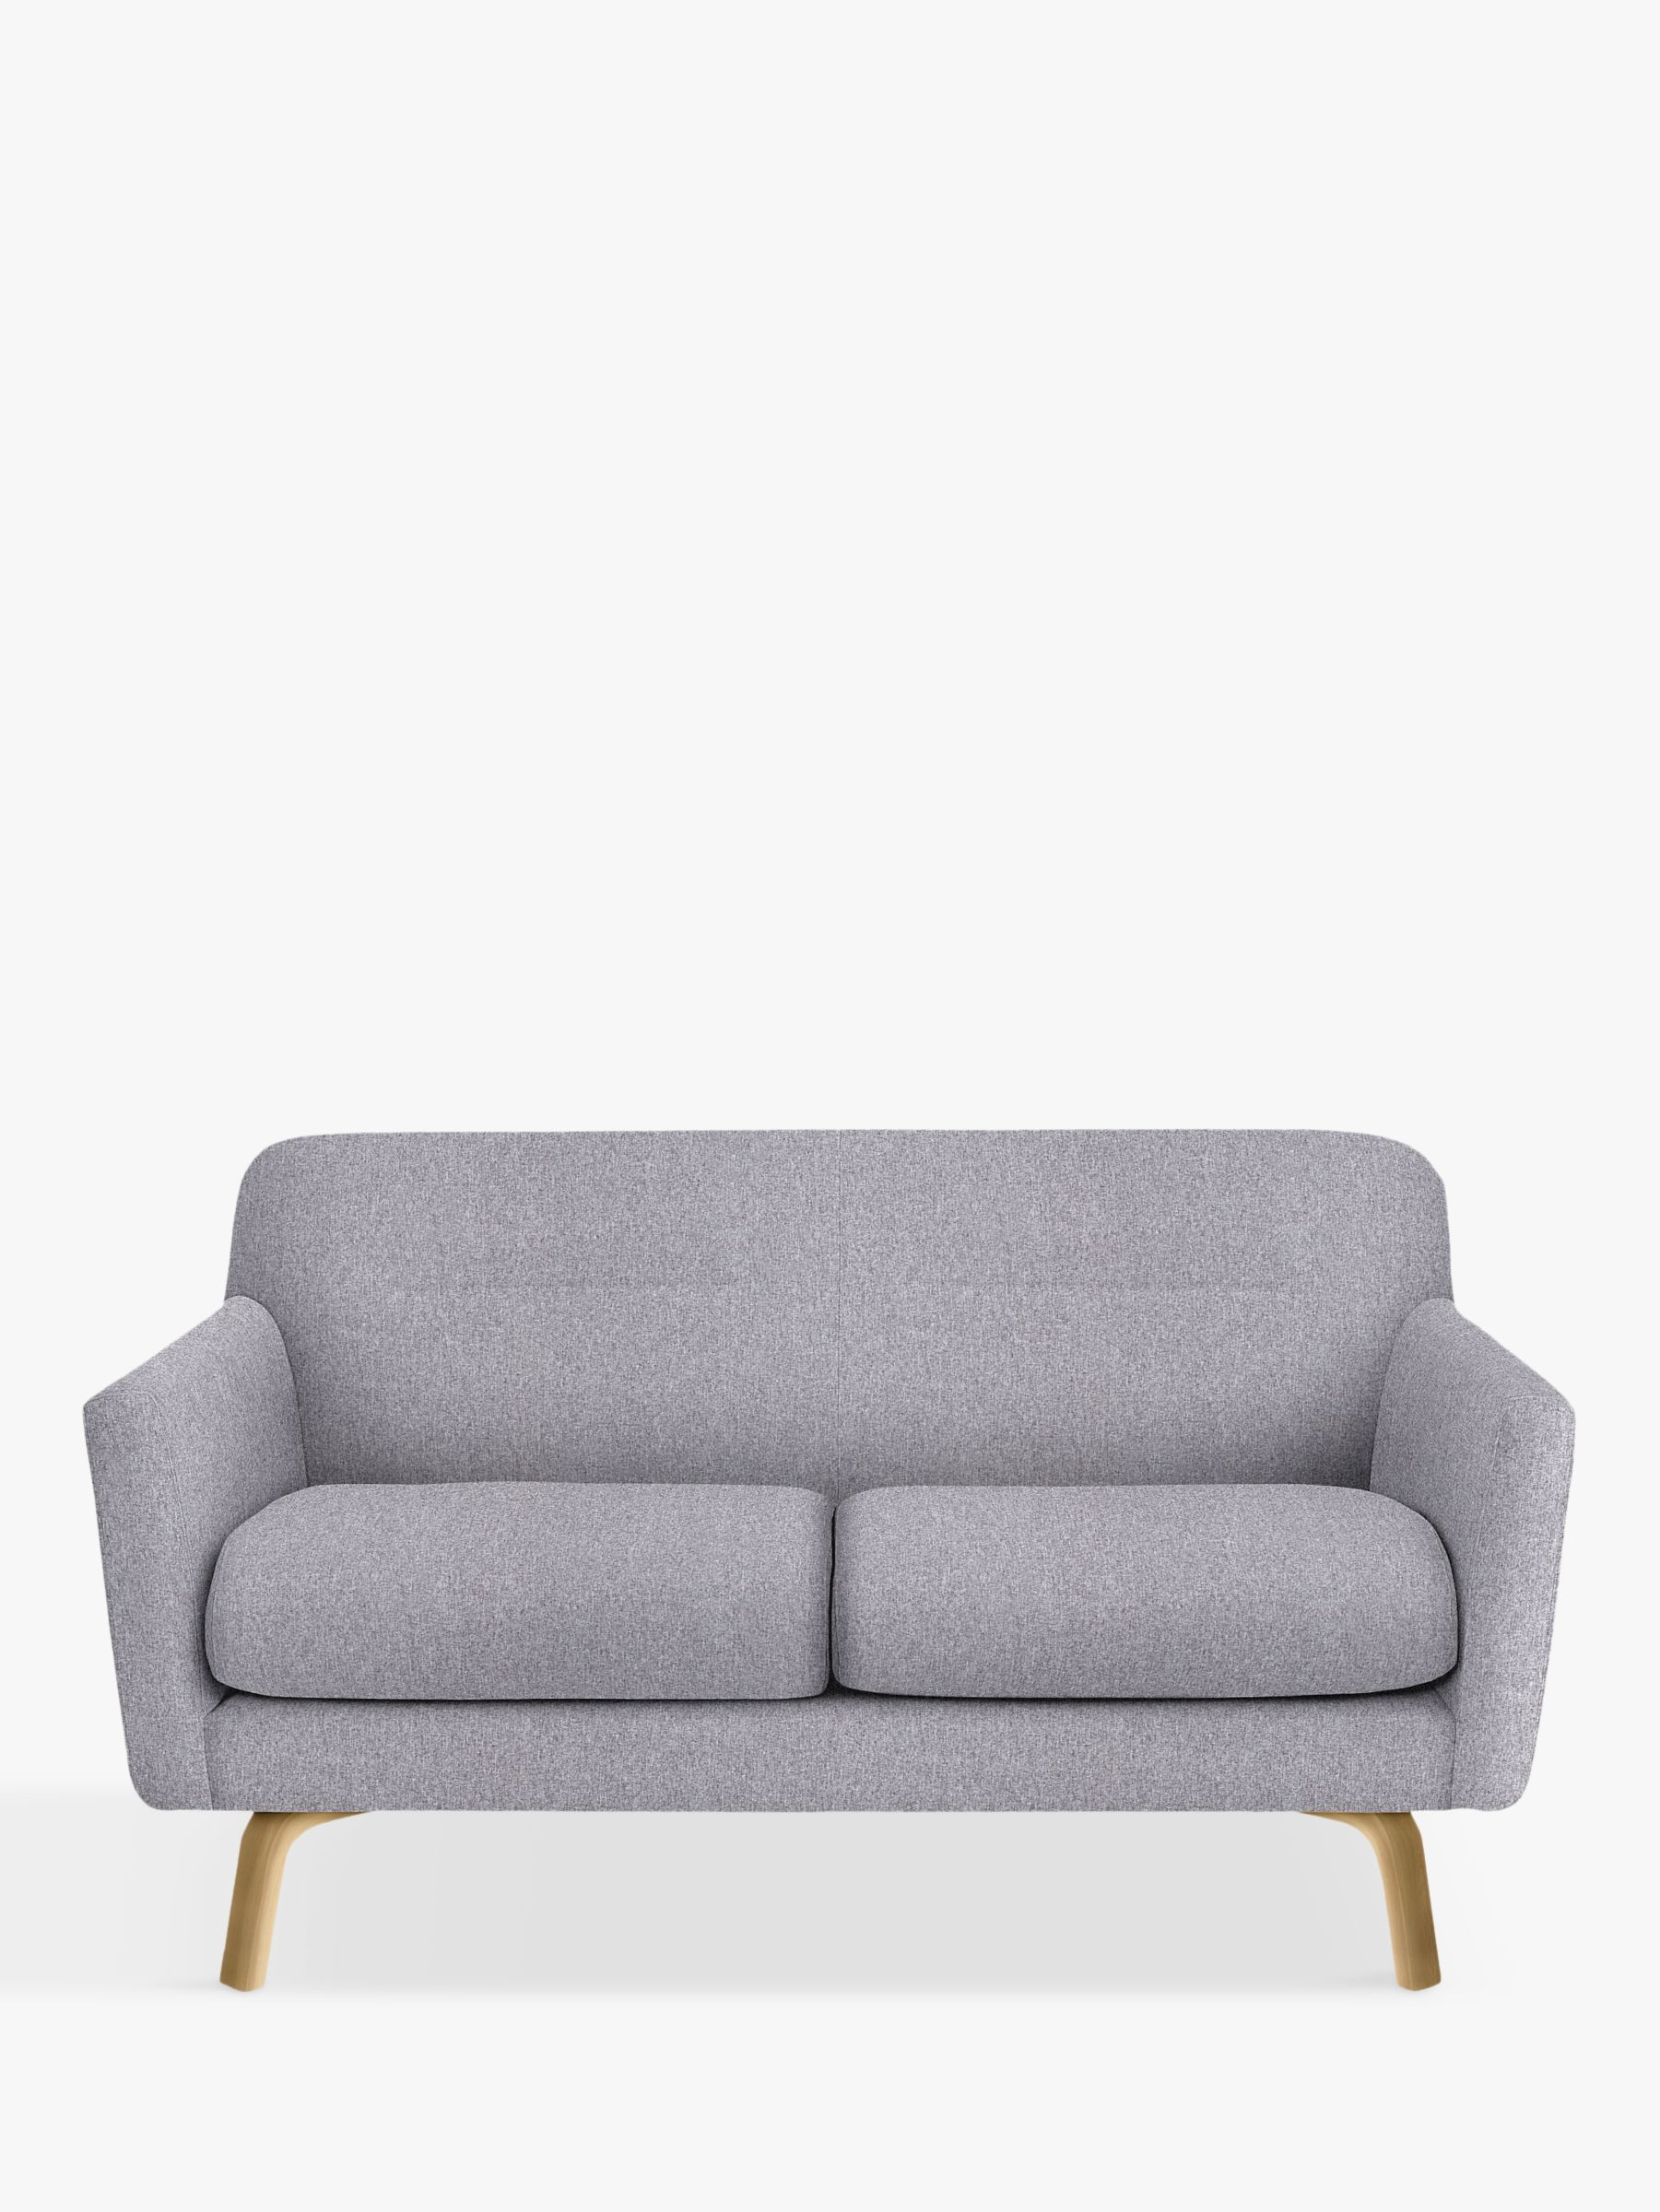 House By John Lewis Archie Ii Medium 2 Seater Sofa Light Leg 2 Seater Sofa Sofa Sofa Bed John Lewis